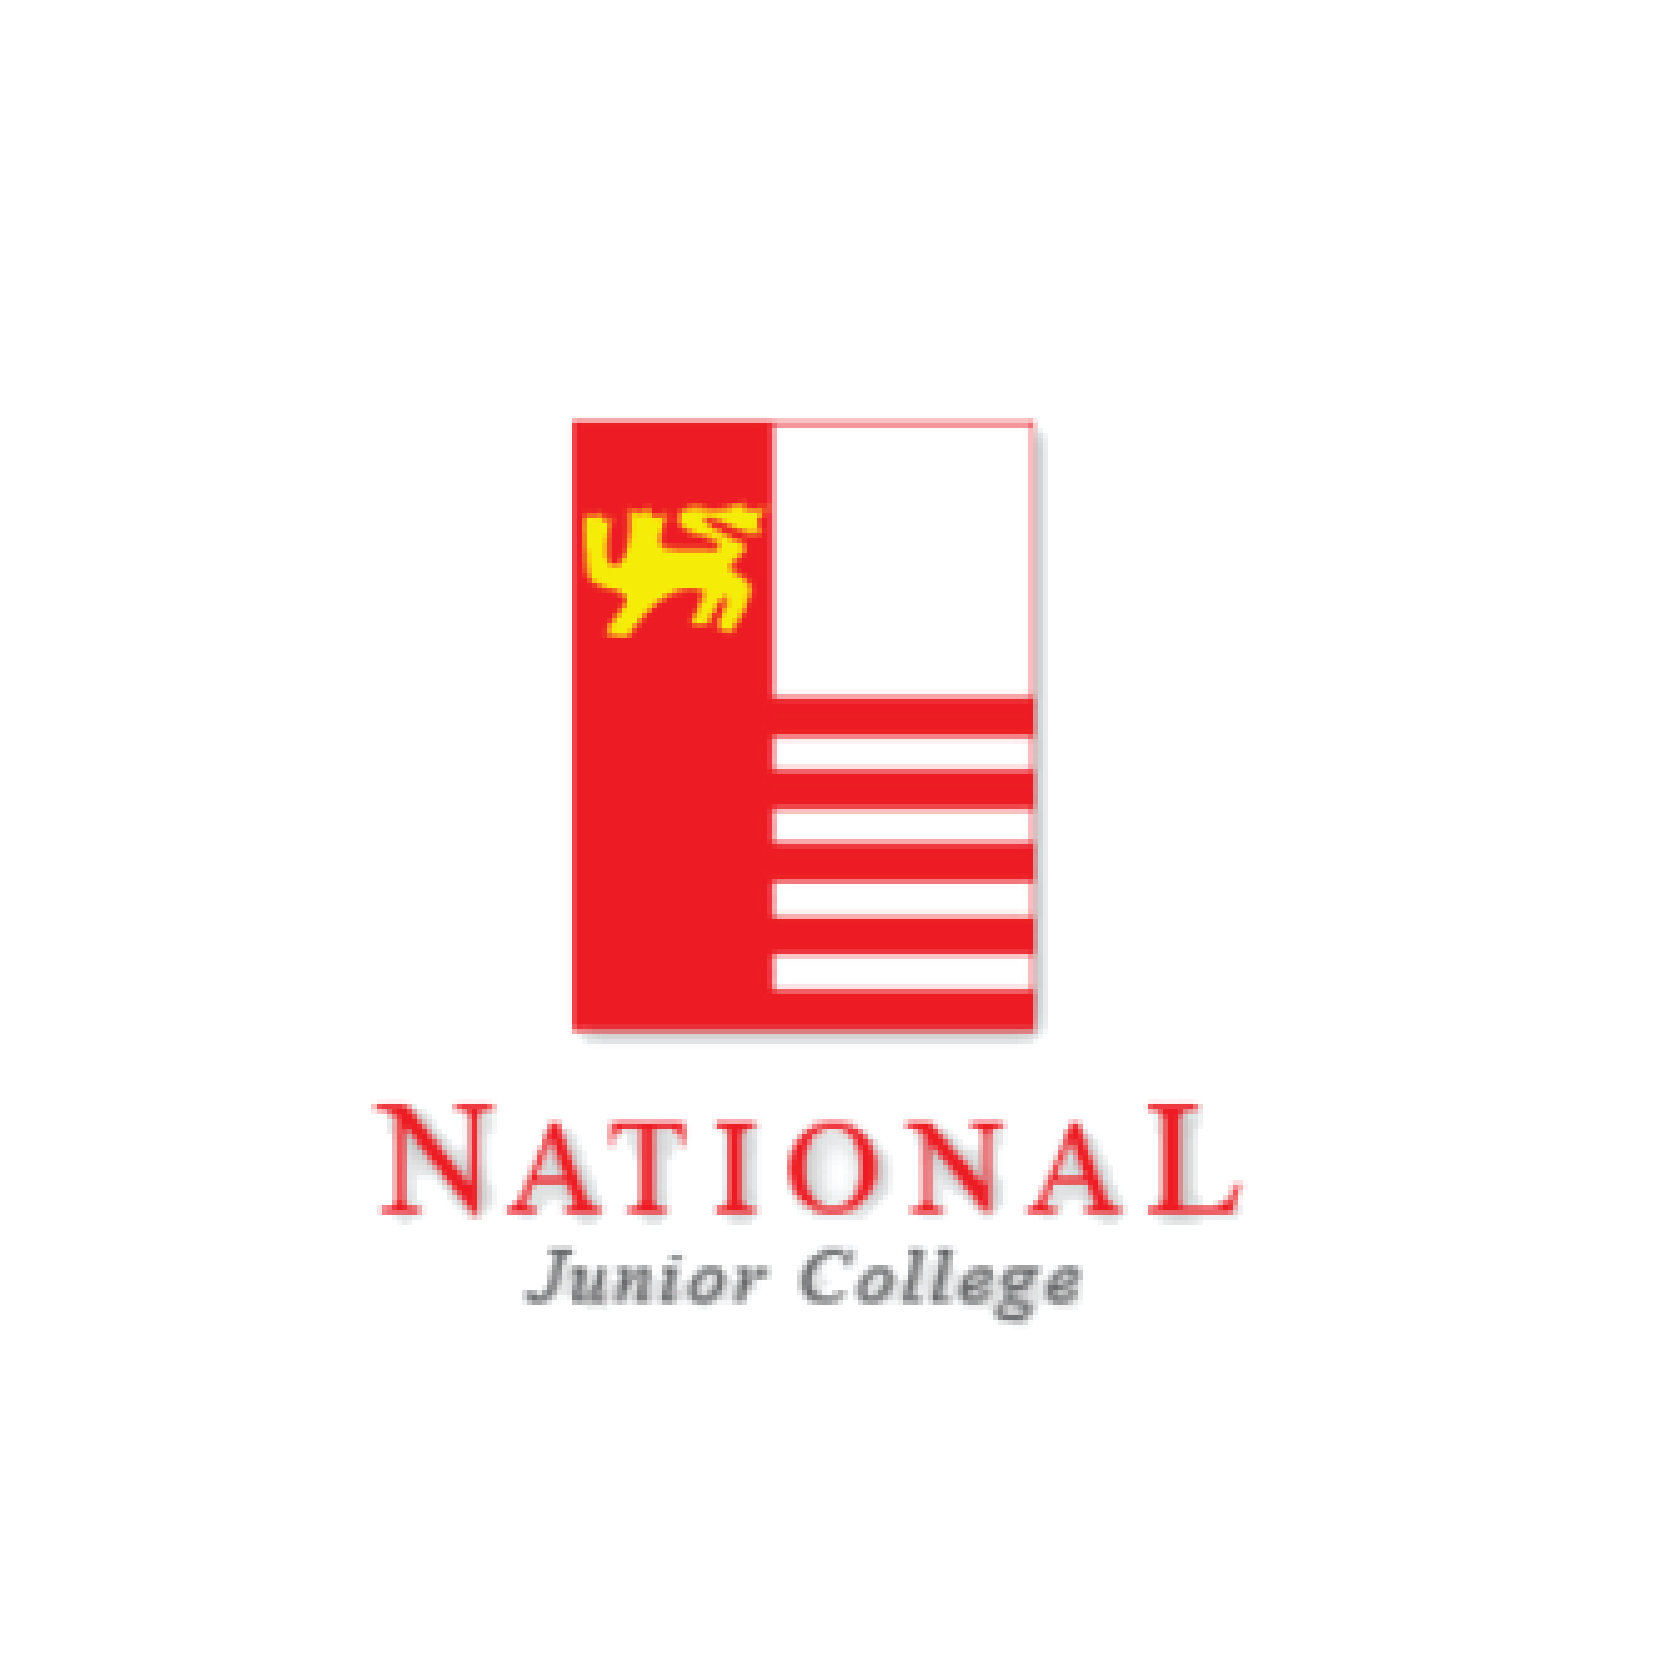 National Junior College